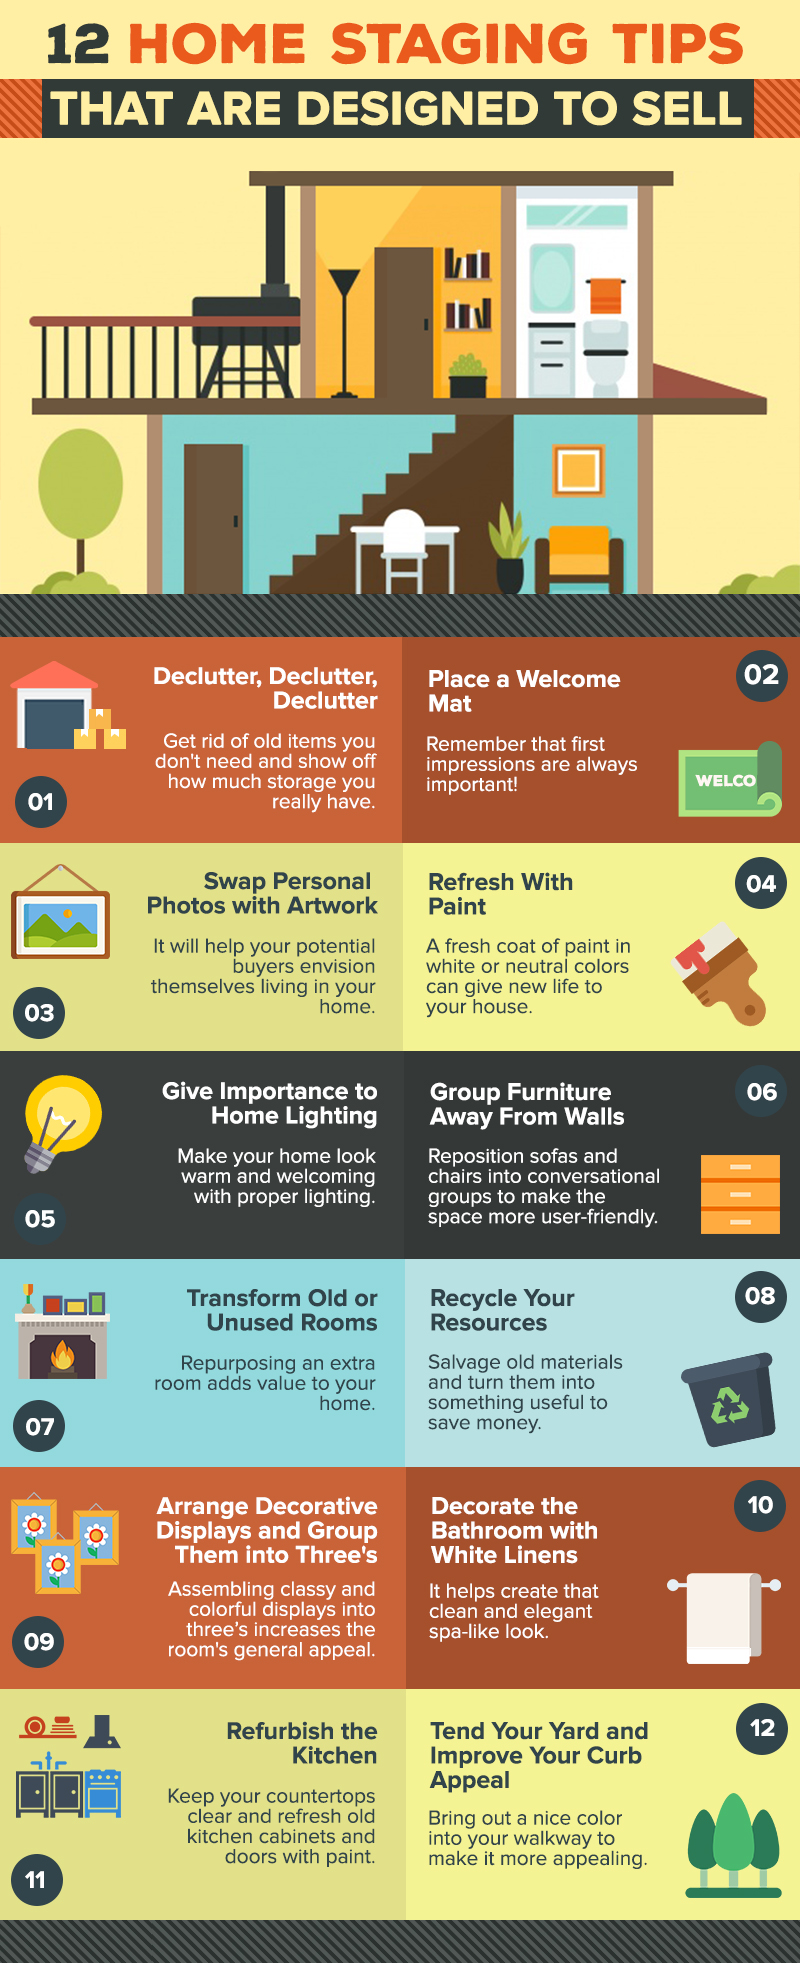 12 Home Staging Tips That Are Designed to Sell-main.jpg